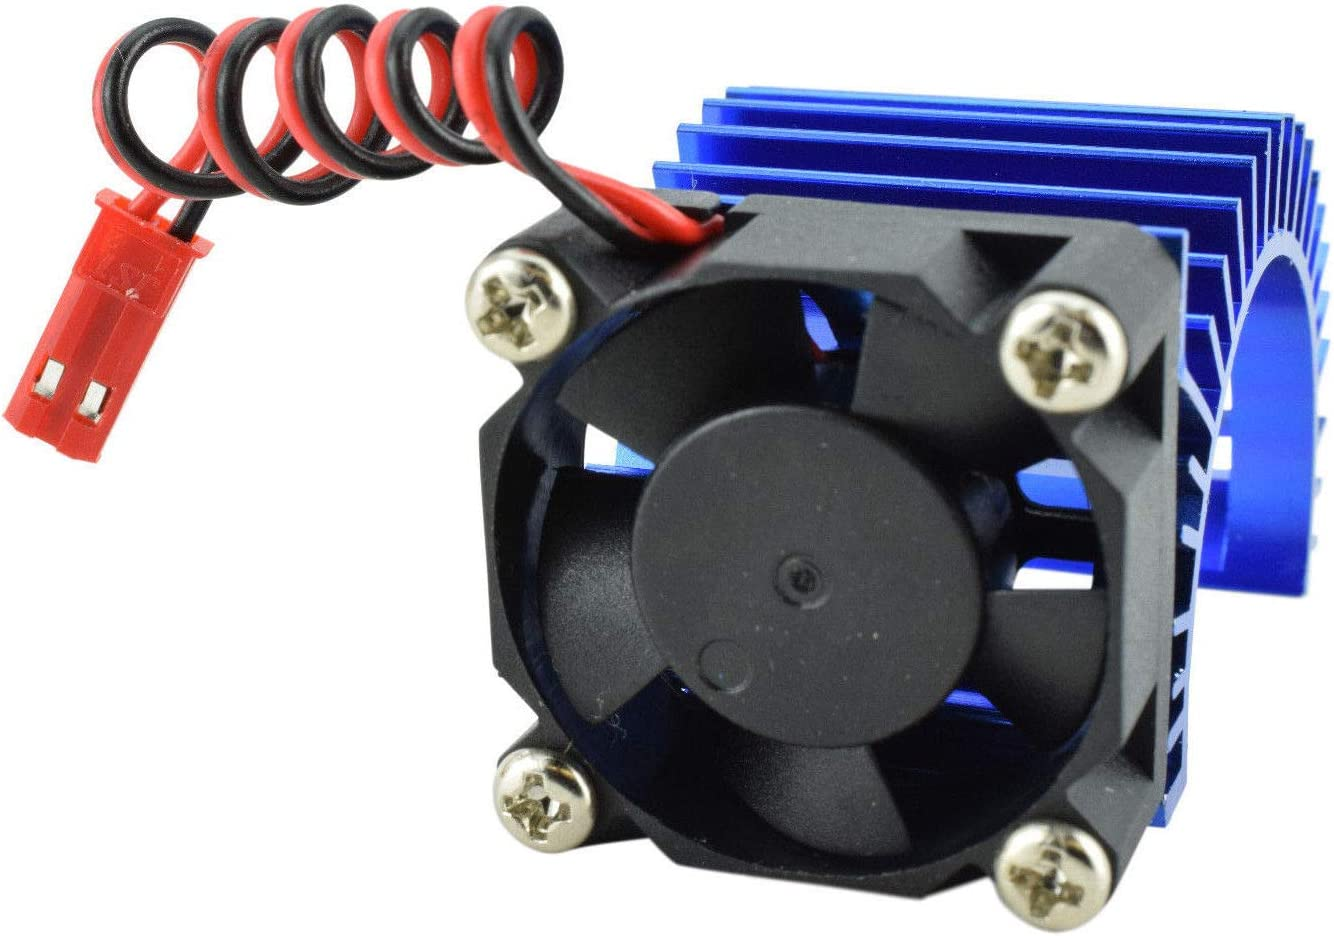 Apex RC Products 540/550 Aluminum Heat Sink W/ 30mm Fan - 3 Colors to Choose from (Blue)